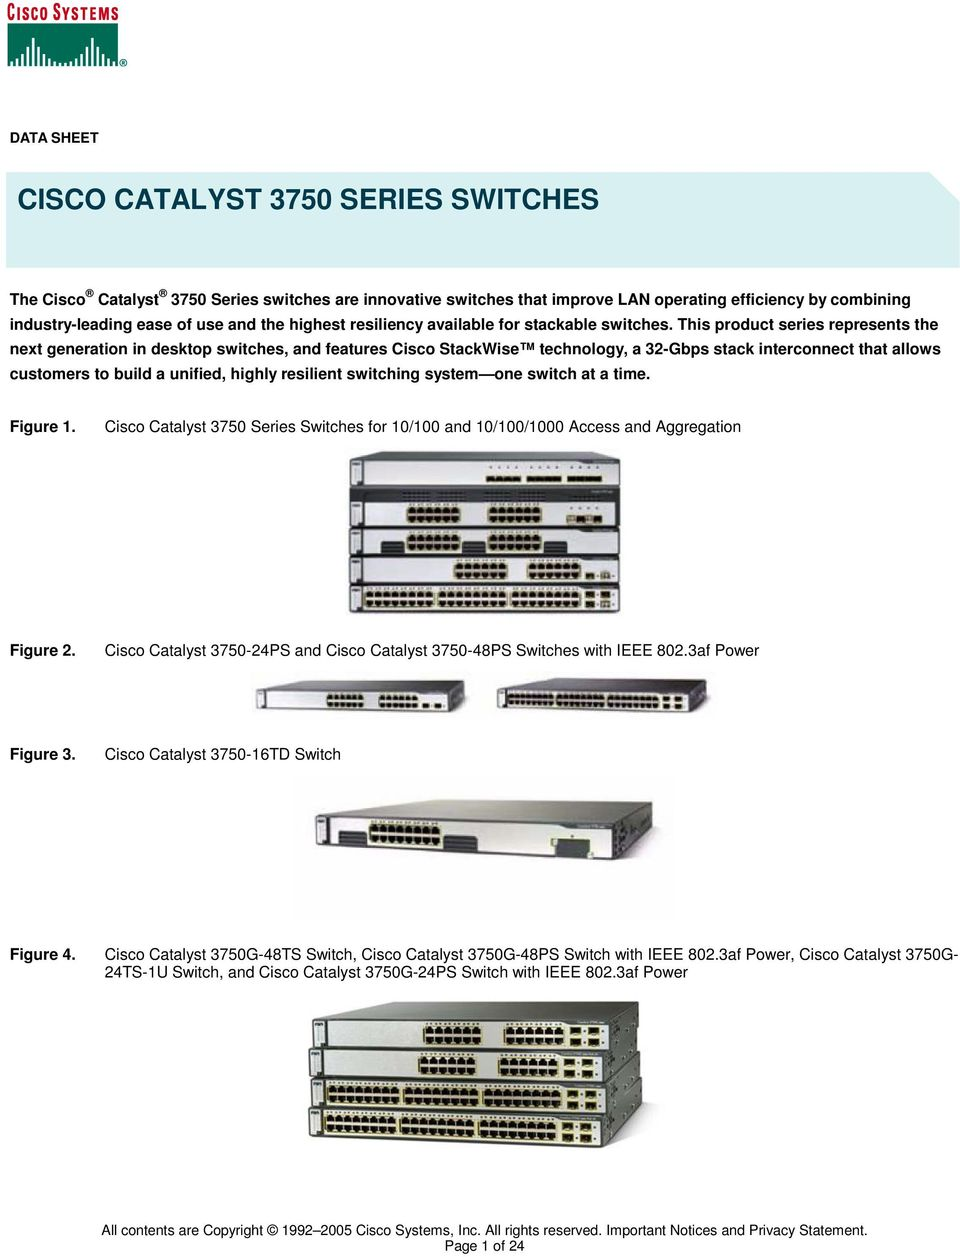 This product series represents the next generation in desktop switches, and features Cisco StackWise technology, a 32-Gbps stack interconnect that allows customers to build a unified, highly